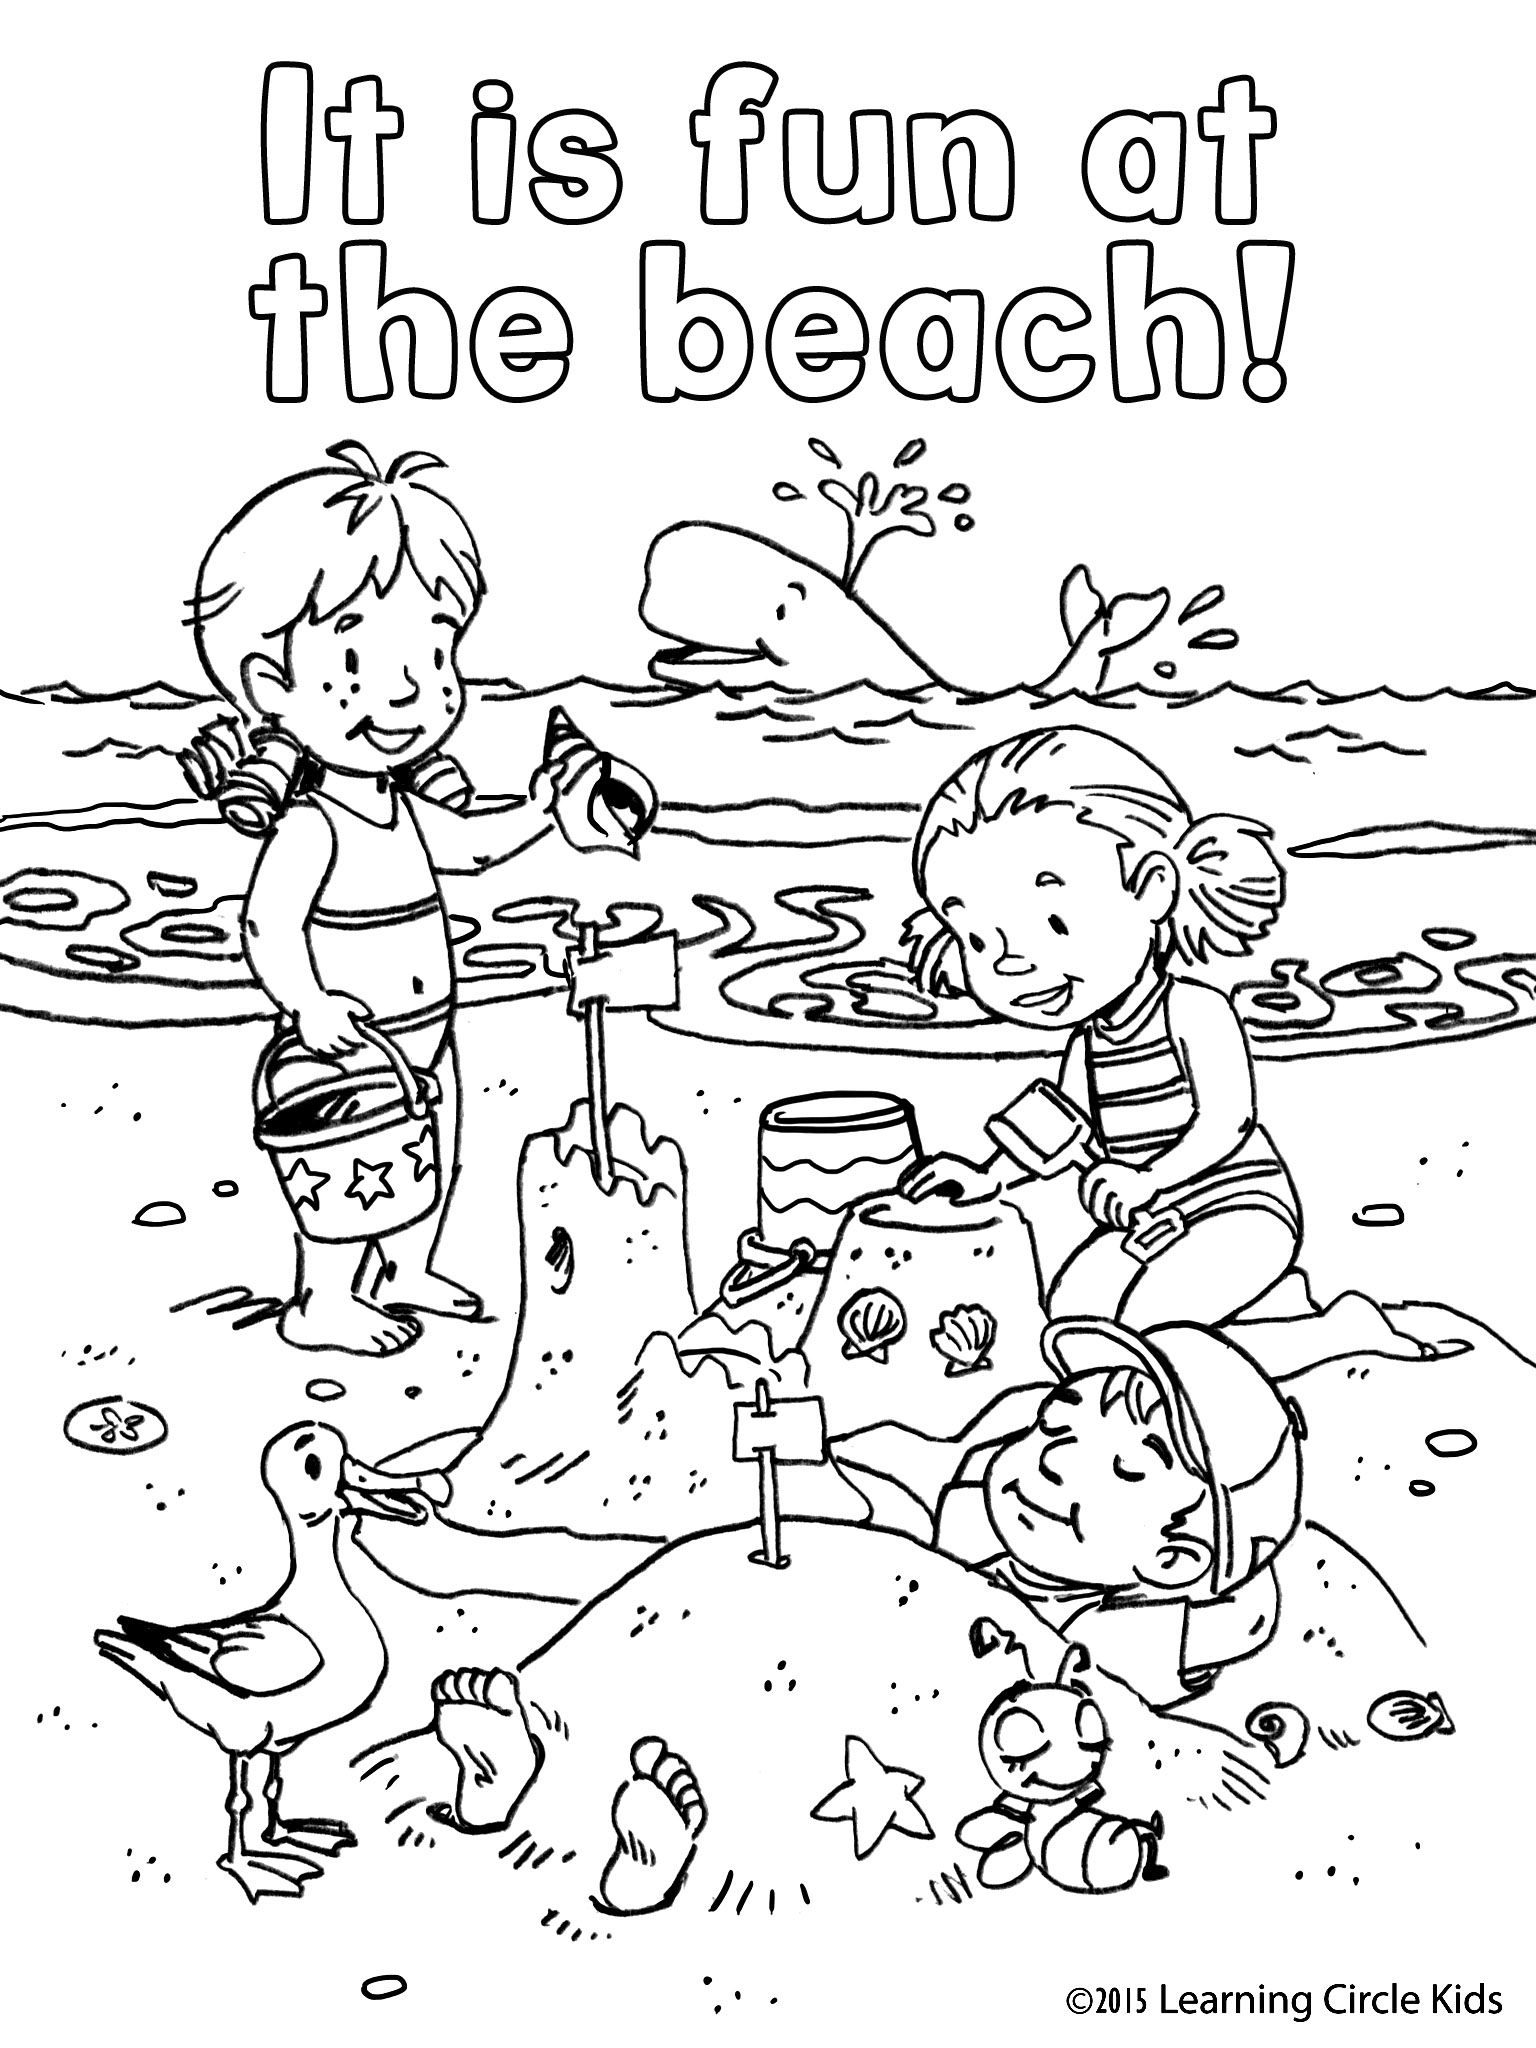 Free Coloring Page Children S Summer Fun At The Beach With Reader Bee And Friends